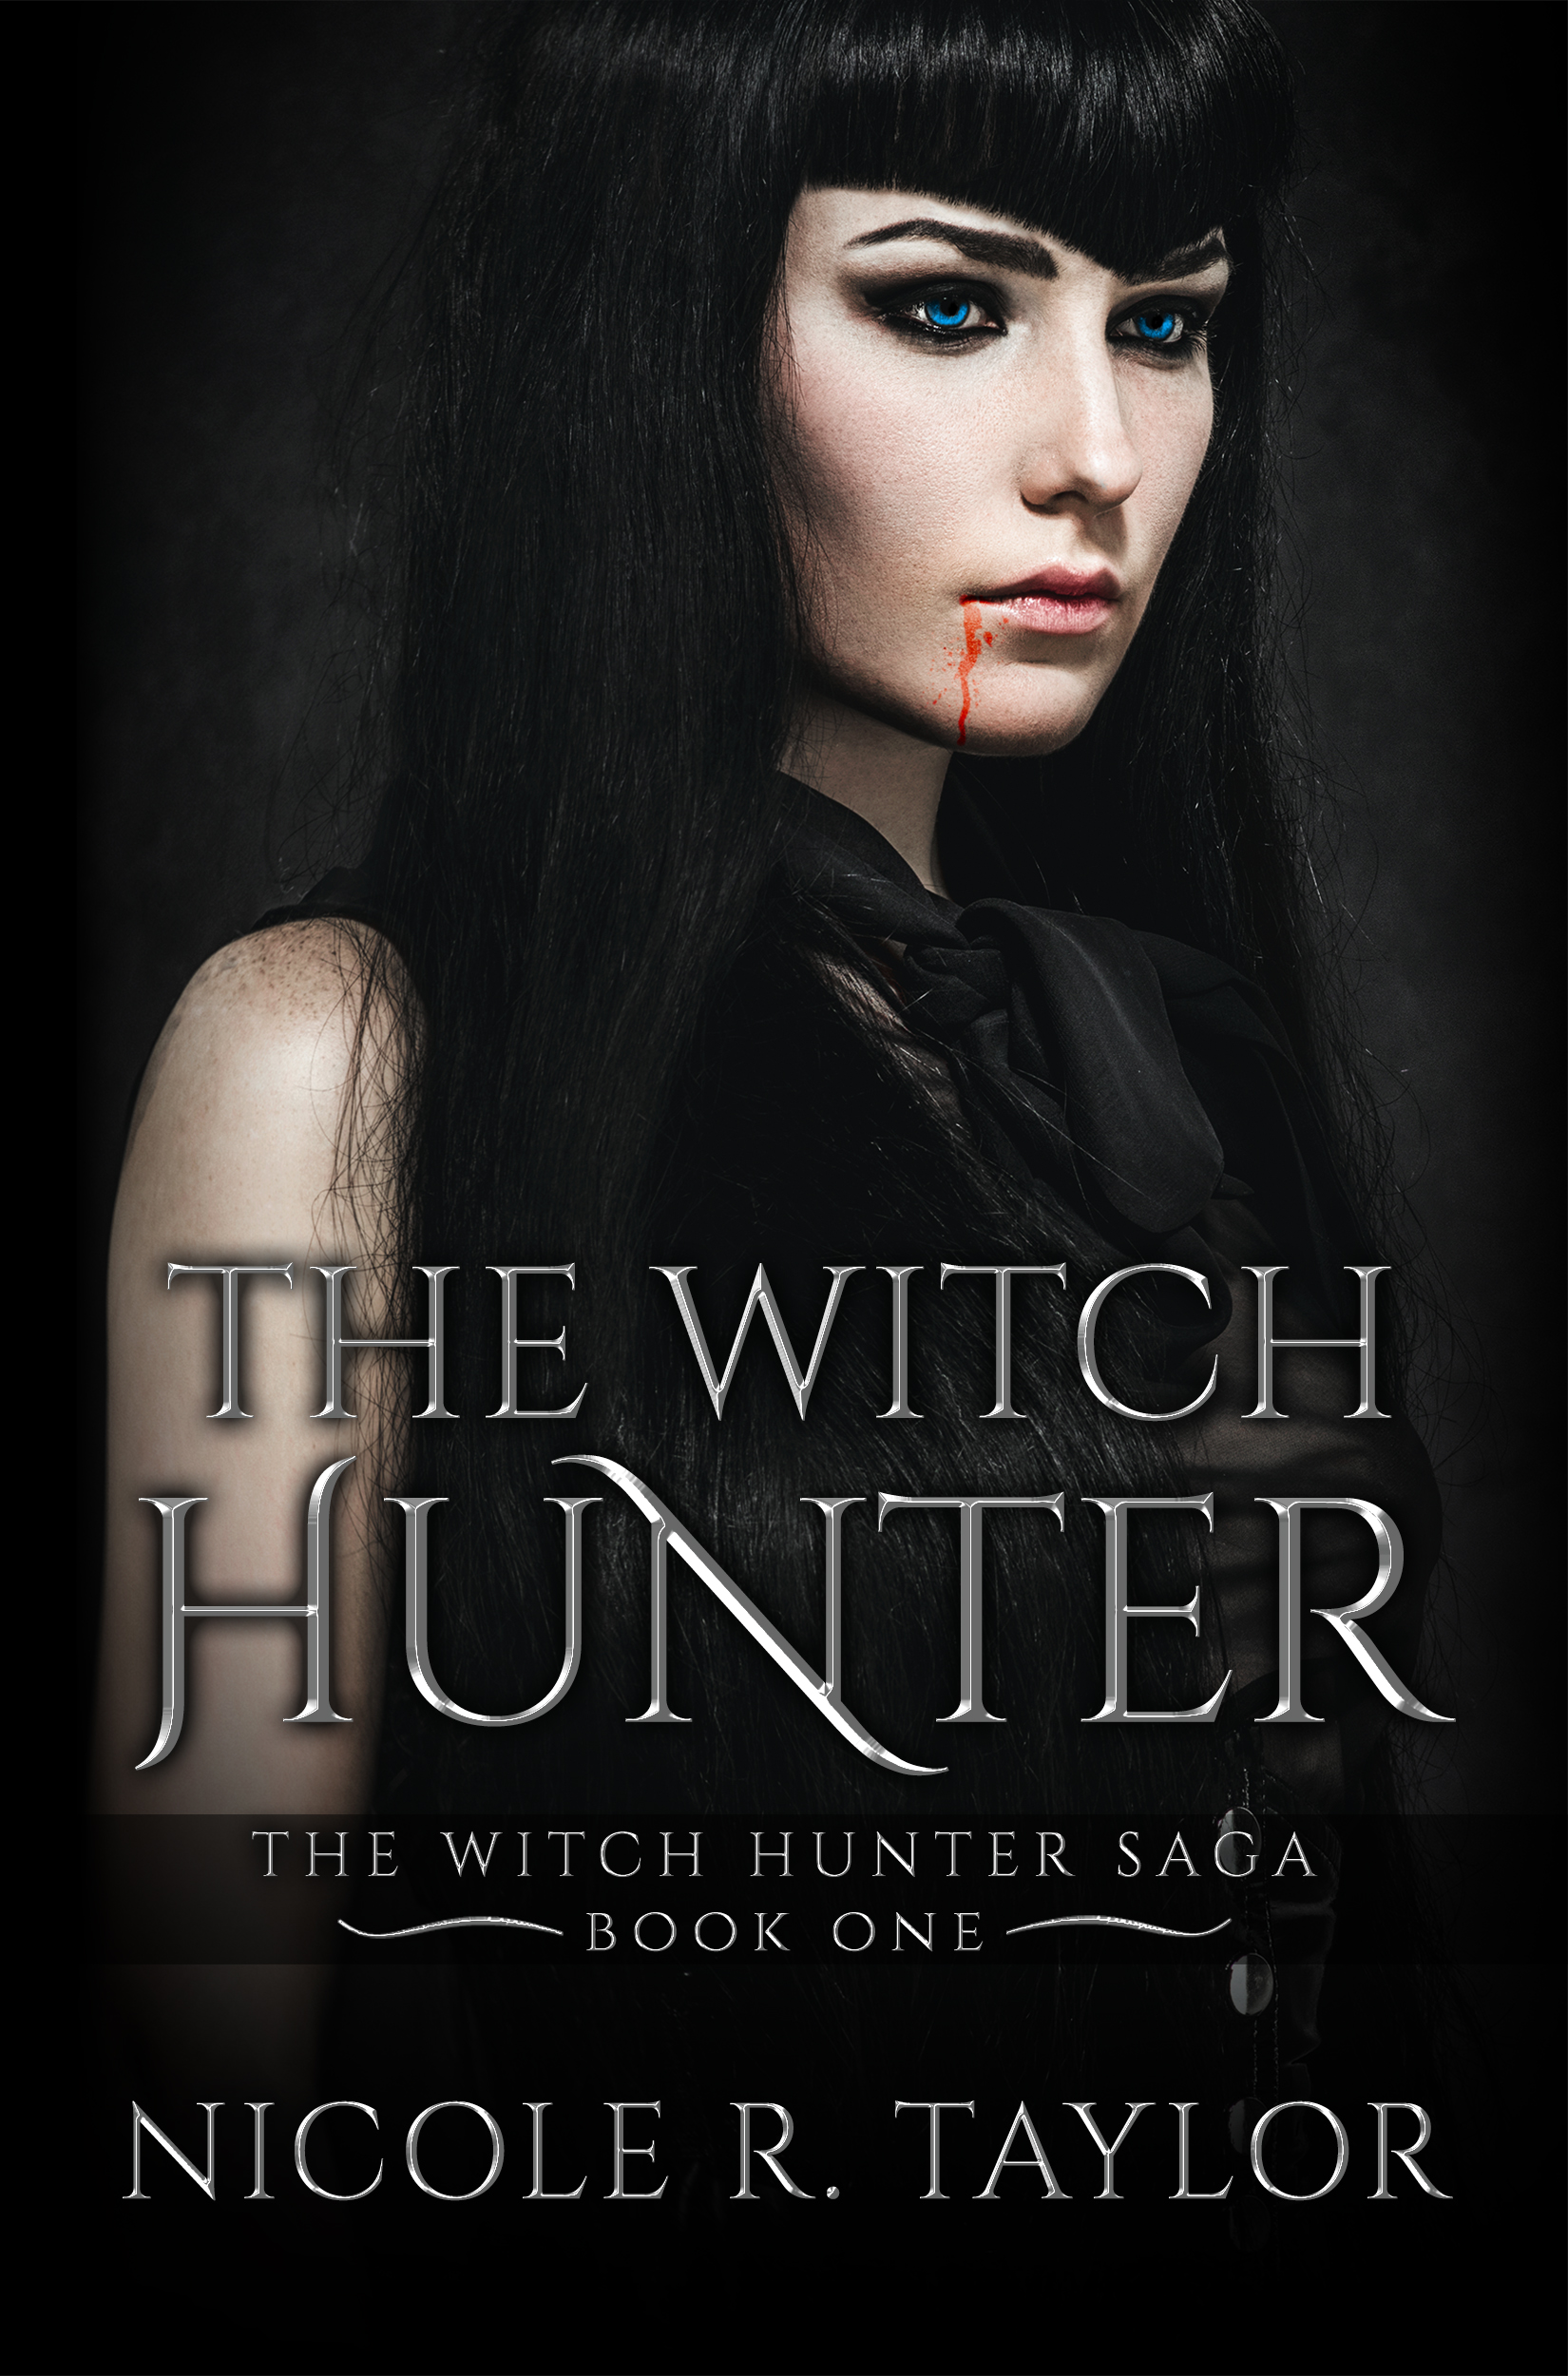 The Witch Hunter (Book One in the Witch Hunter Saga) (sst-cccxiv)